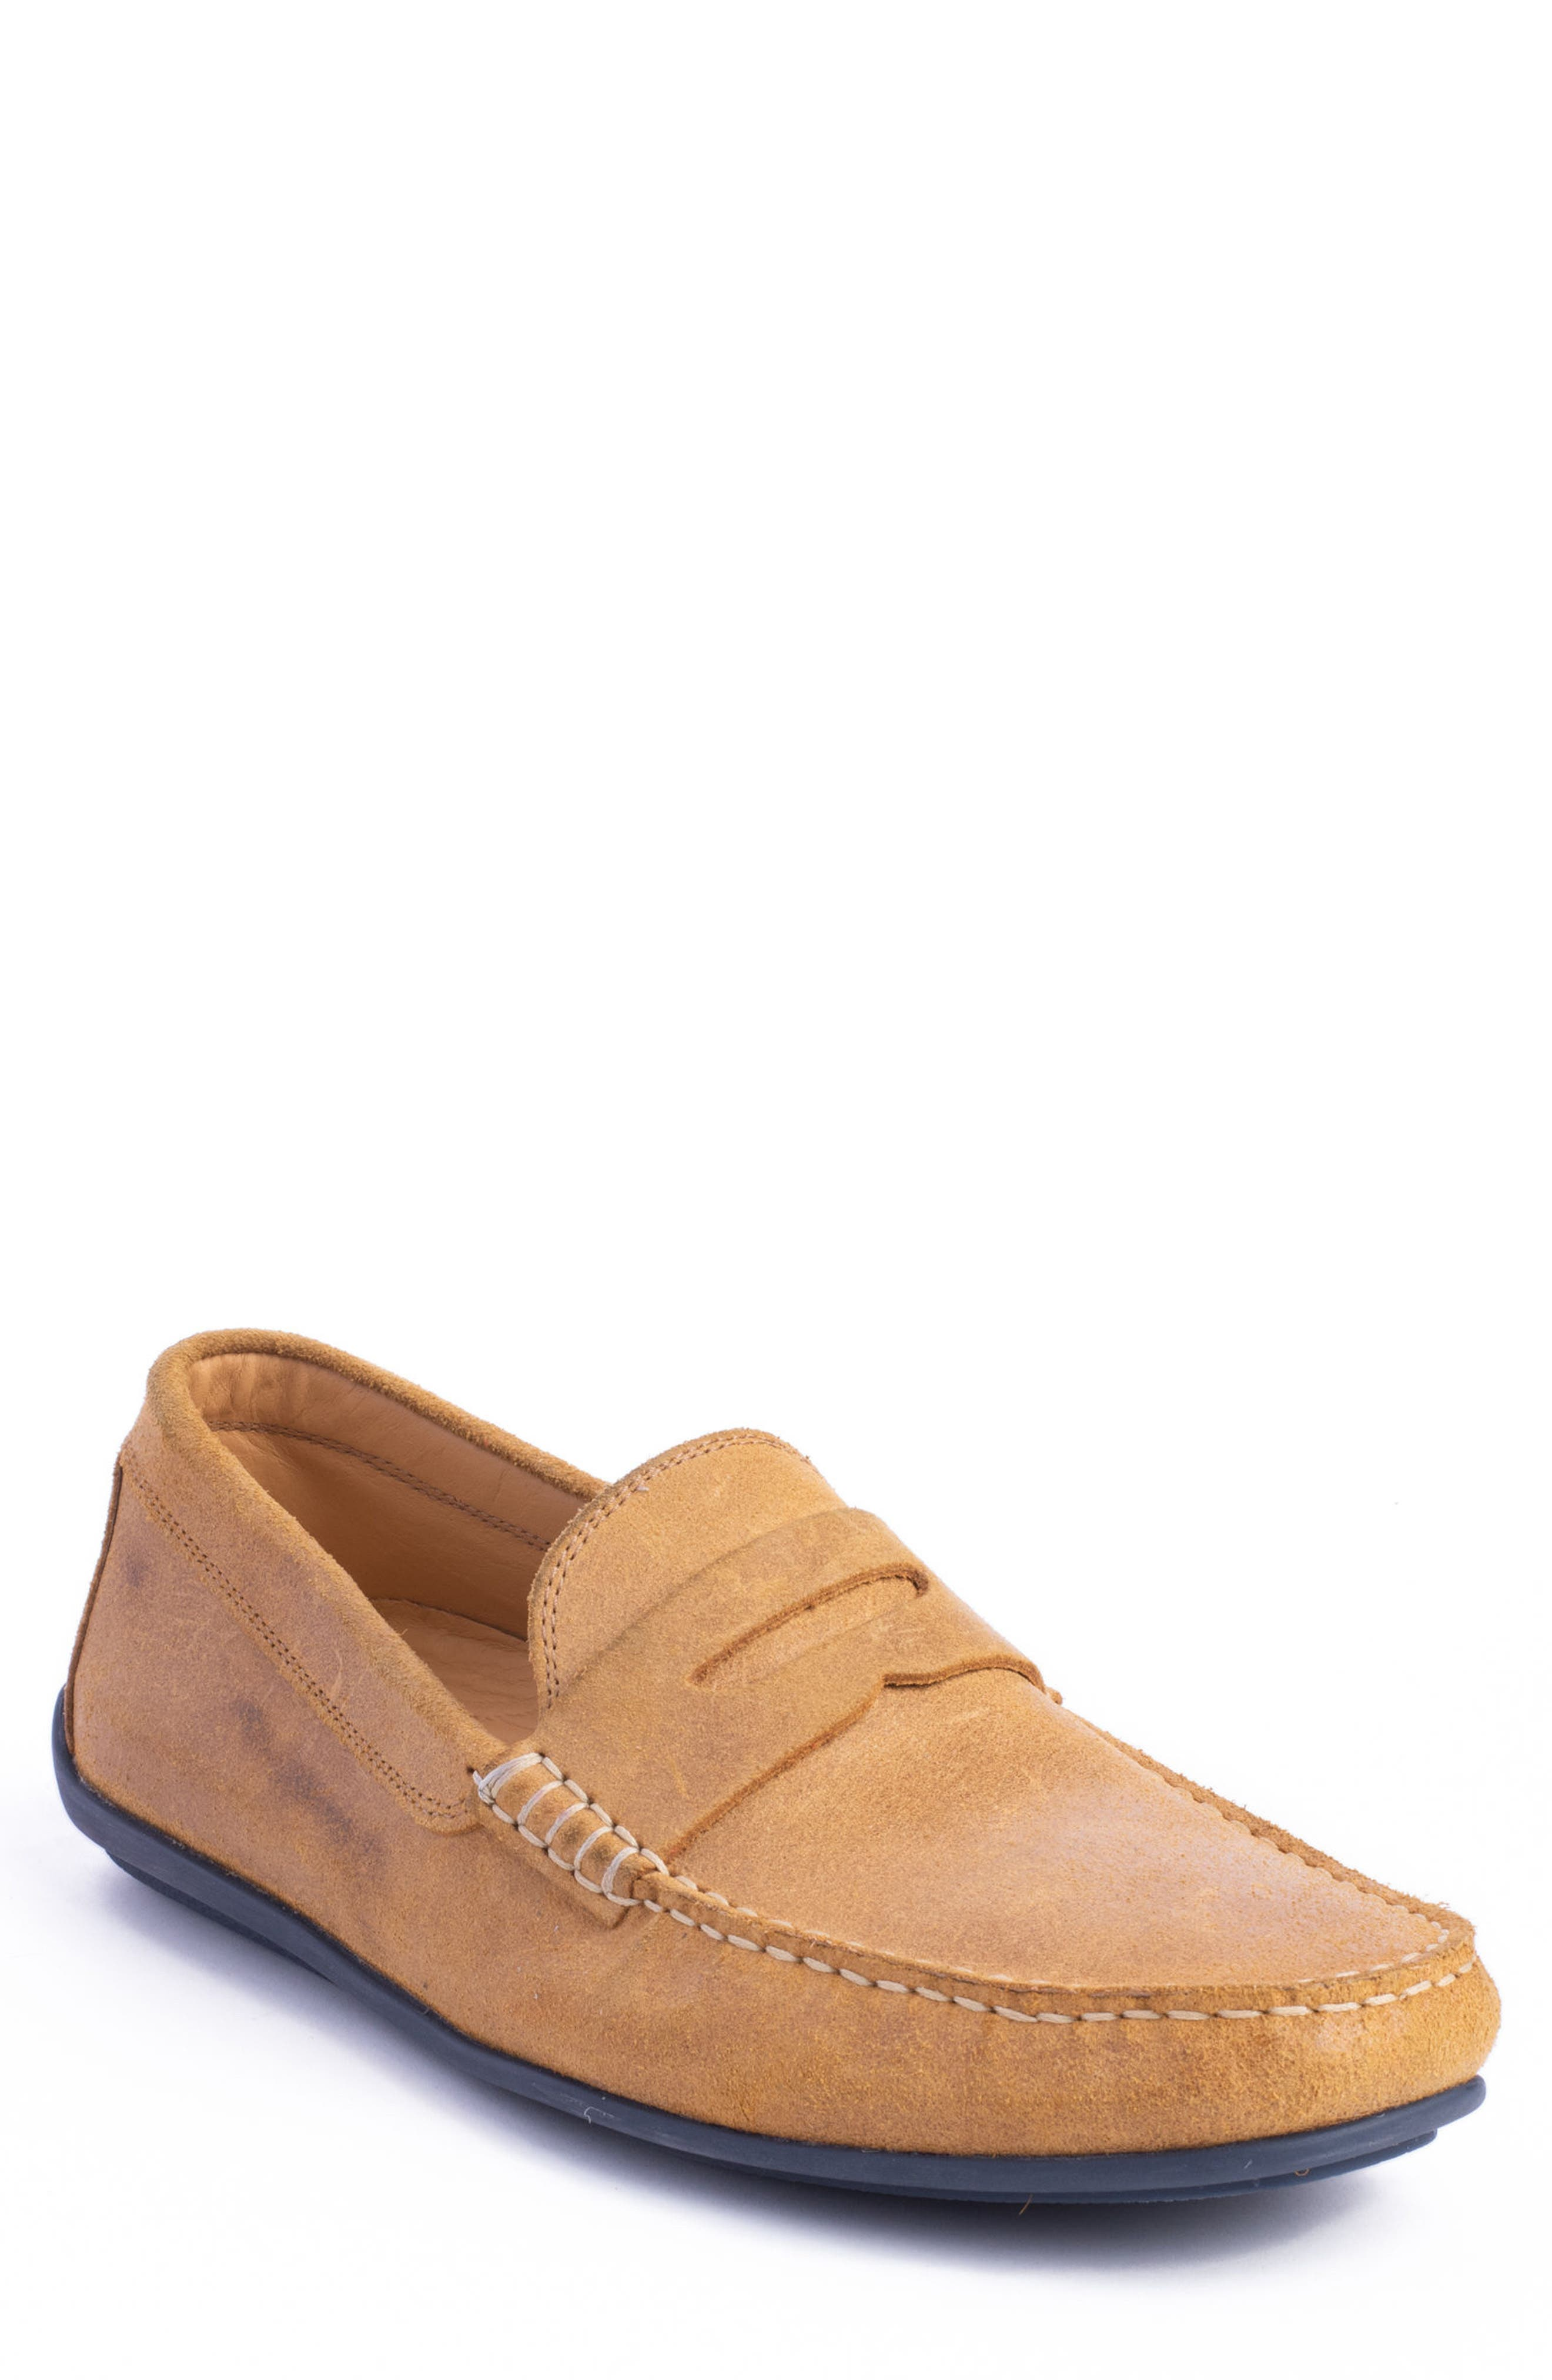 Barretts Penny Loafer,                             Main thumbnail 1, color,                             Tan